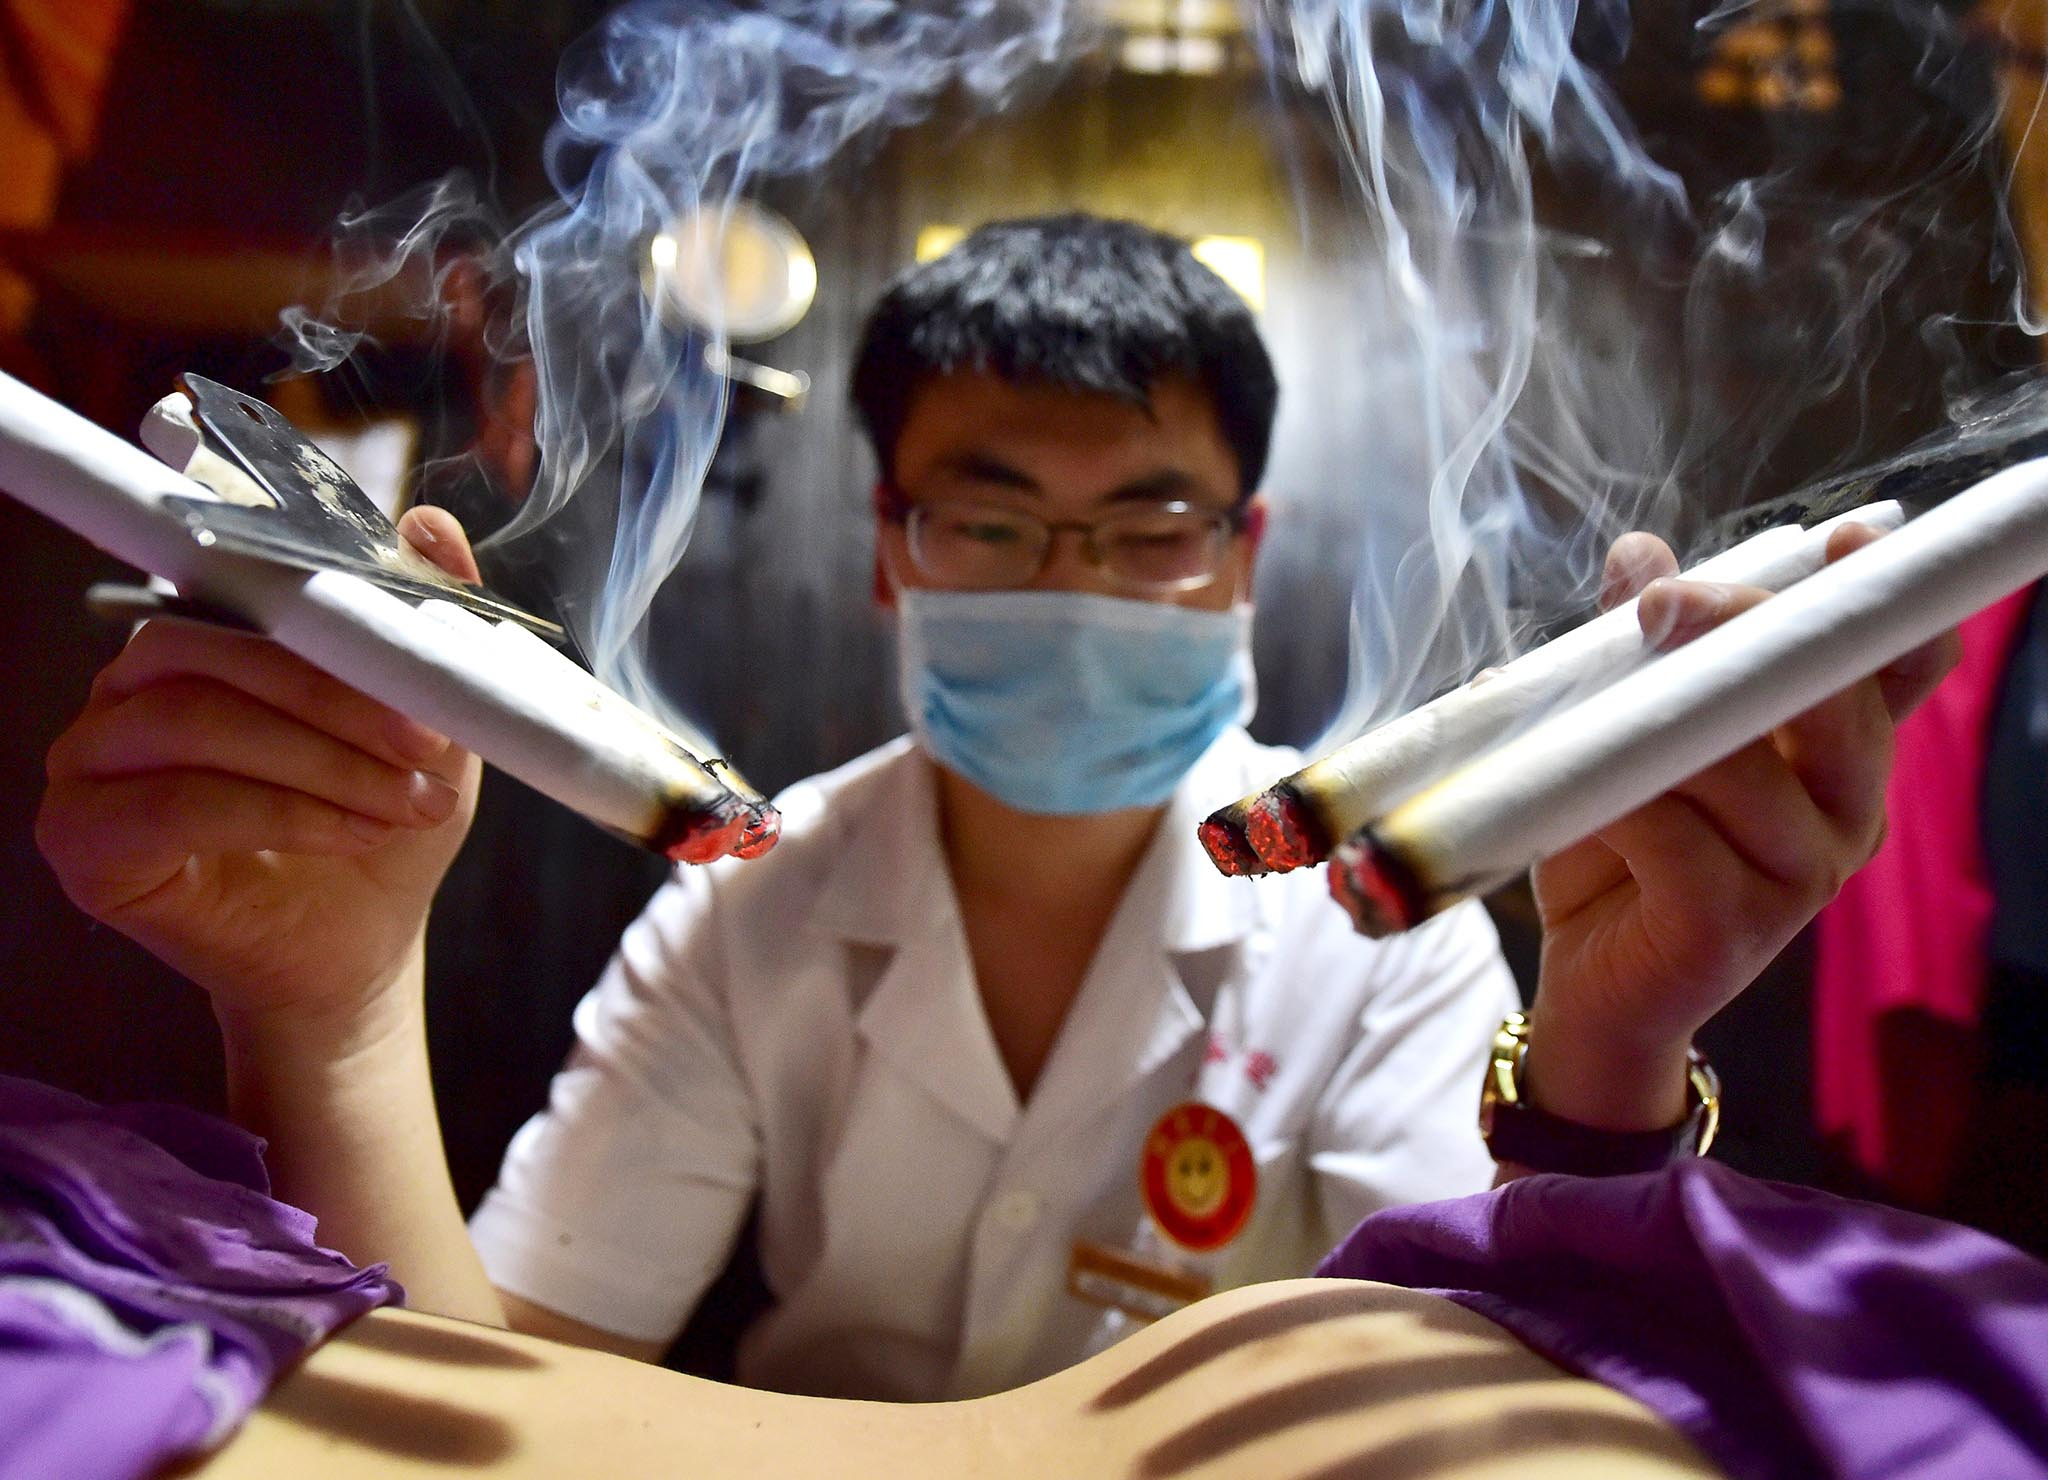 A therapist applies traditional moxibustion treatment on a patient in Yiwu